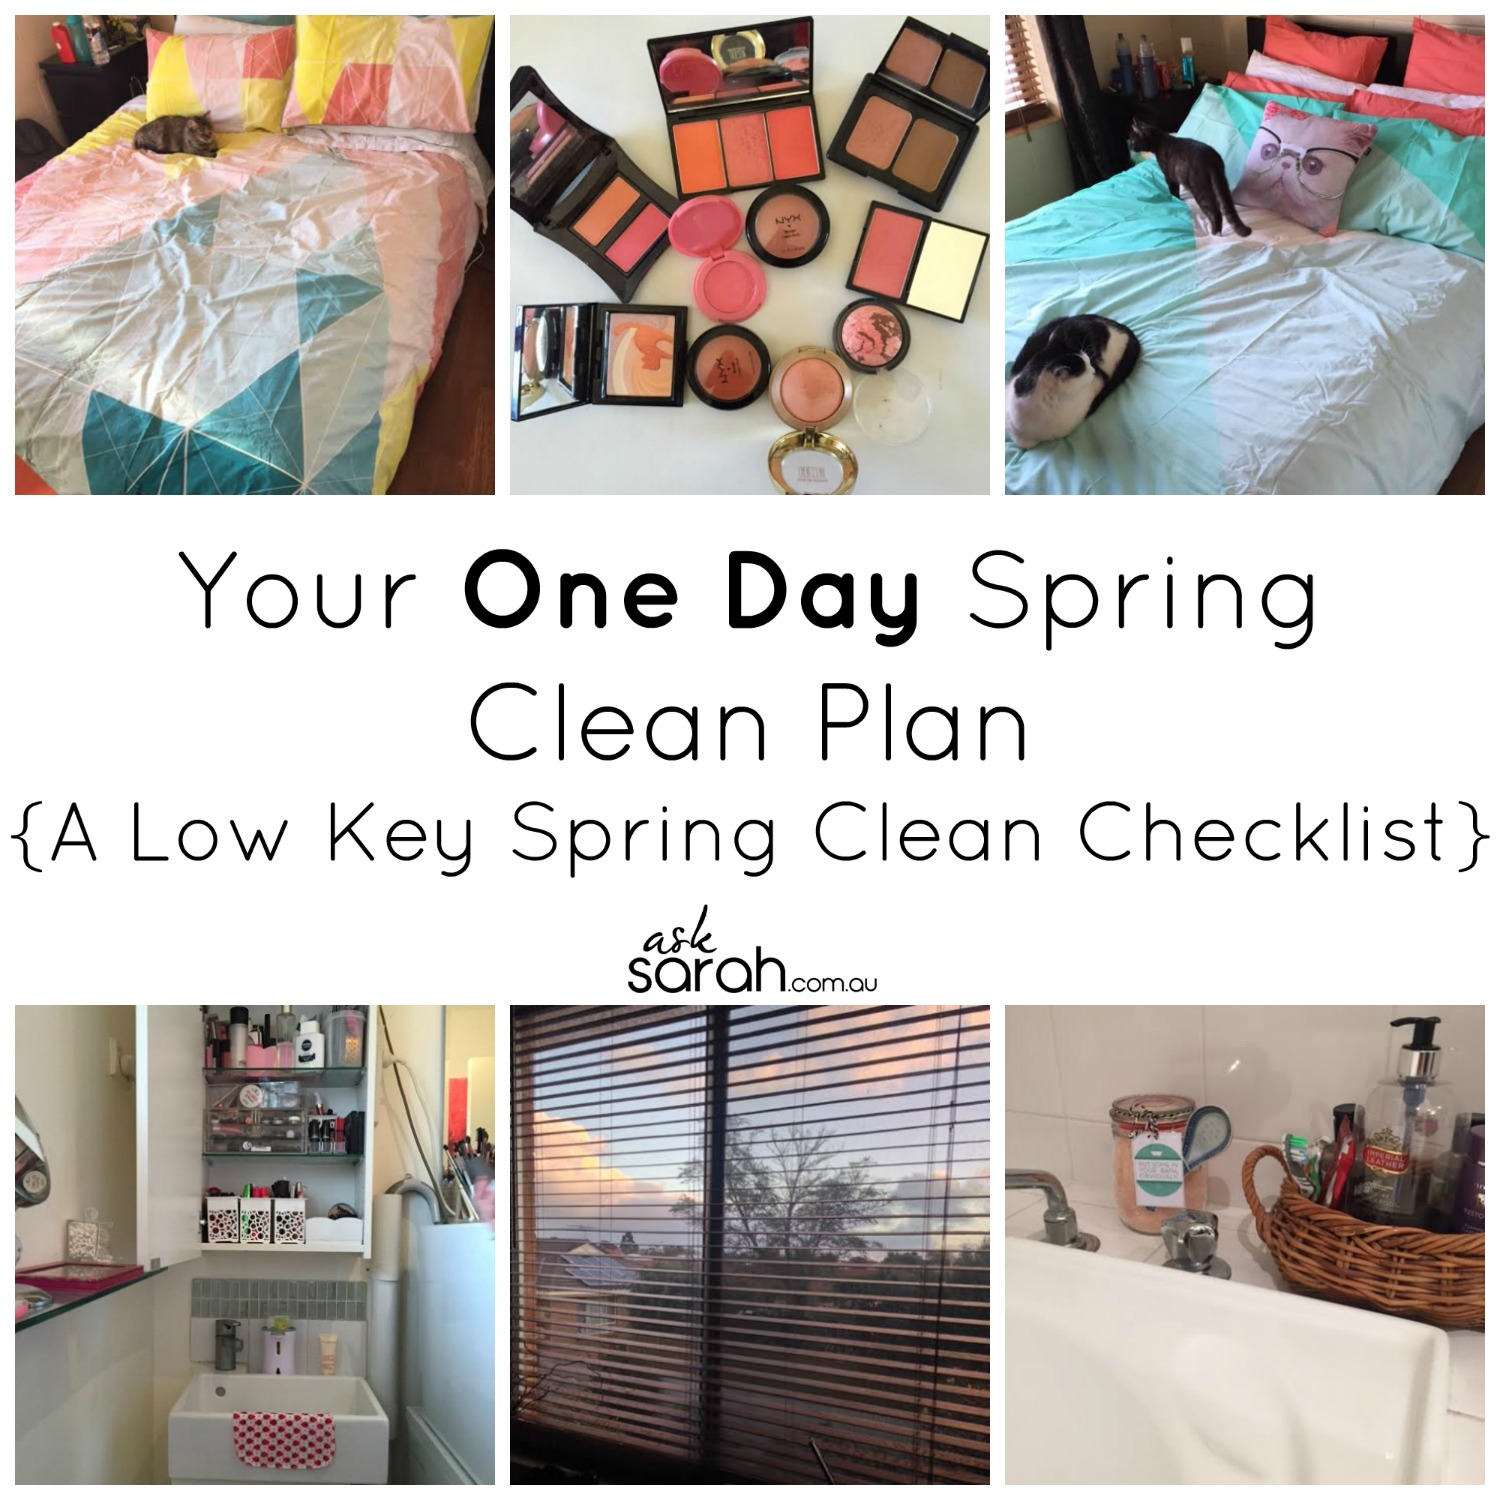 Your One Day Spring Clean Plan {A Low Key Spring Clean Checklist}